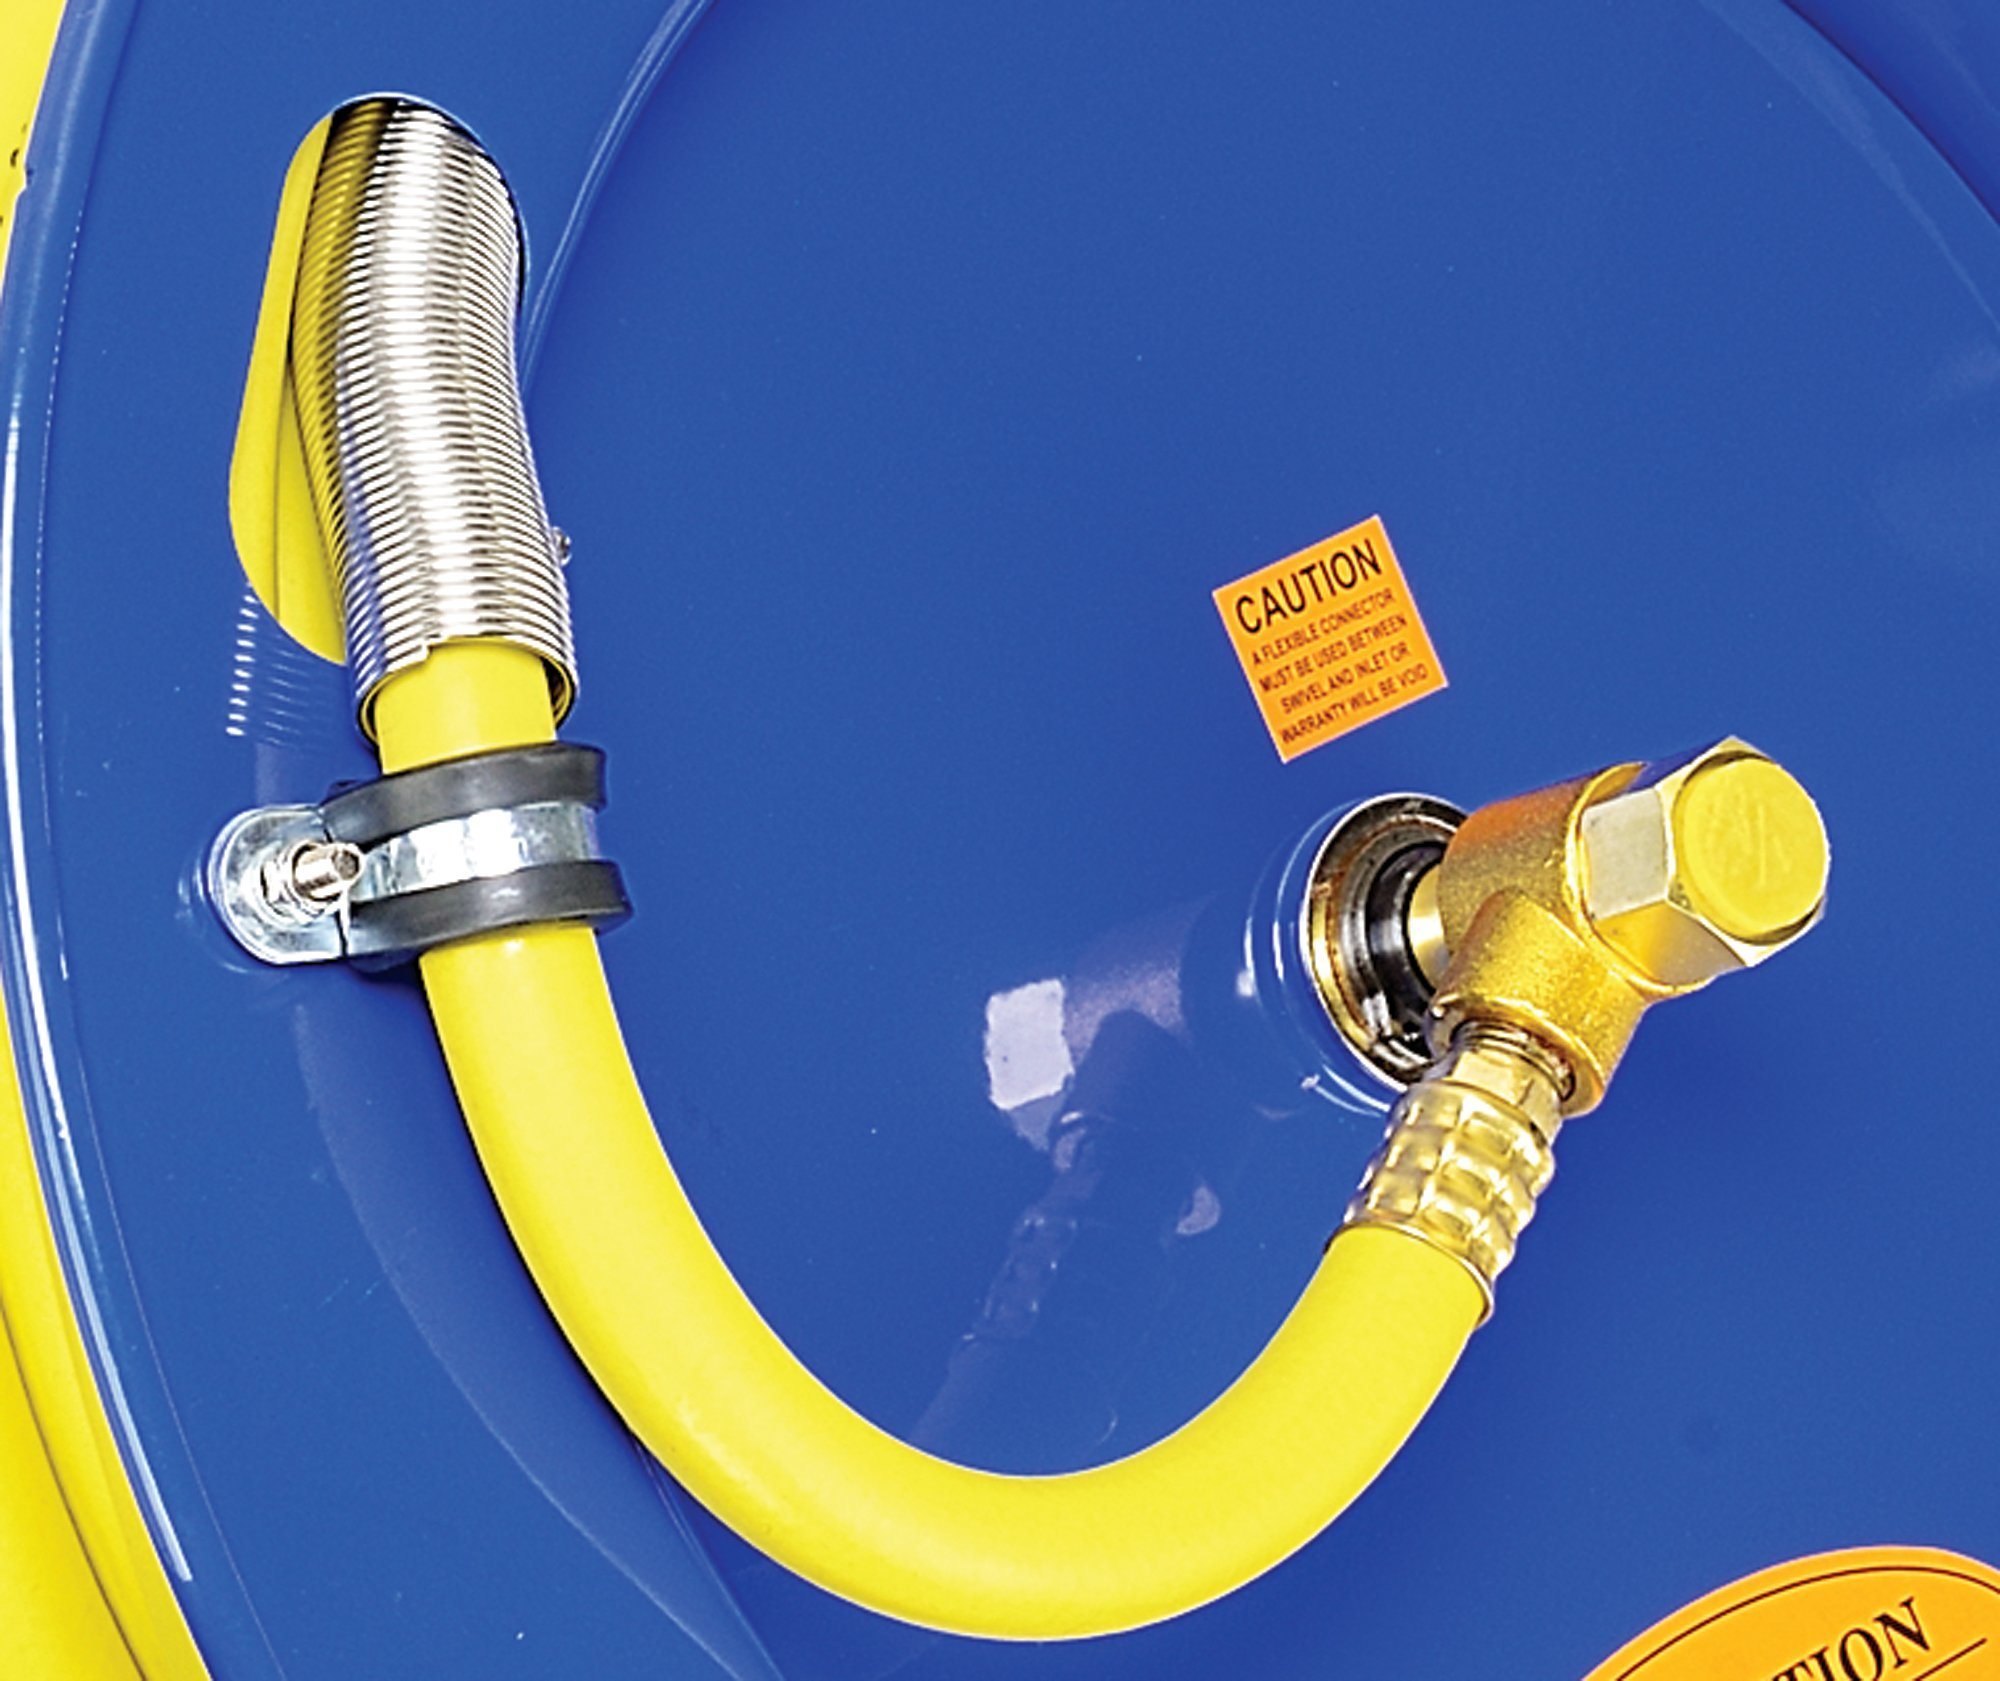 Goodyear L815153G Steel Retractable Air Compressor/Water Hose Reel with 3/8 in. x 50 ft. Rubber Hose, Max. 300PSI by Goodyear (Image #6)